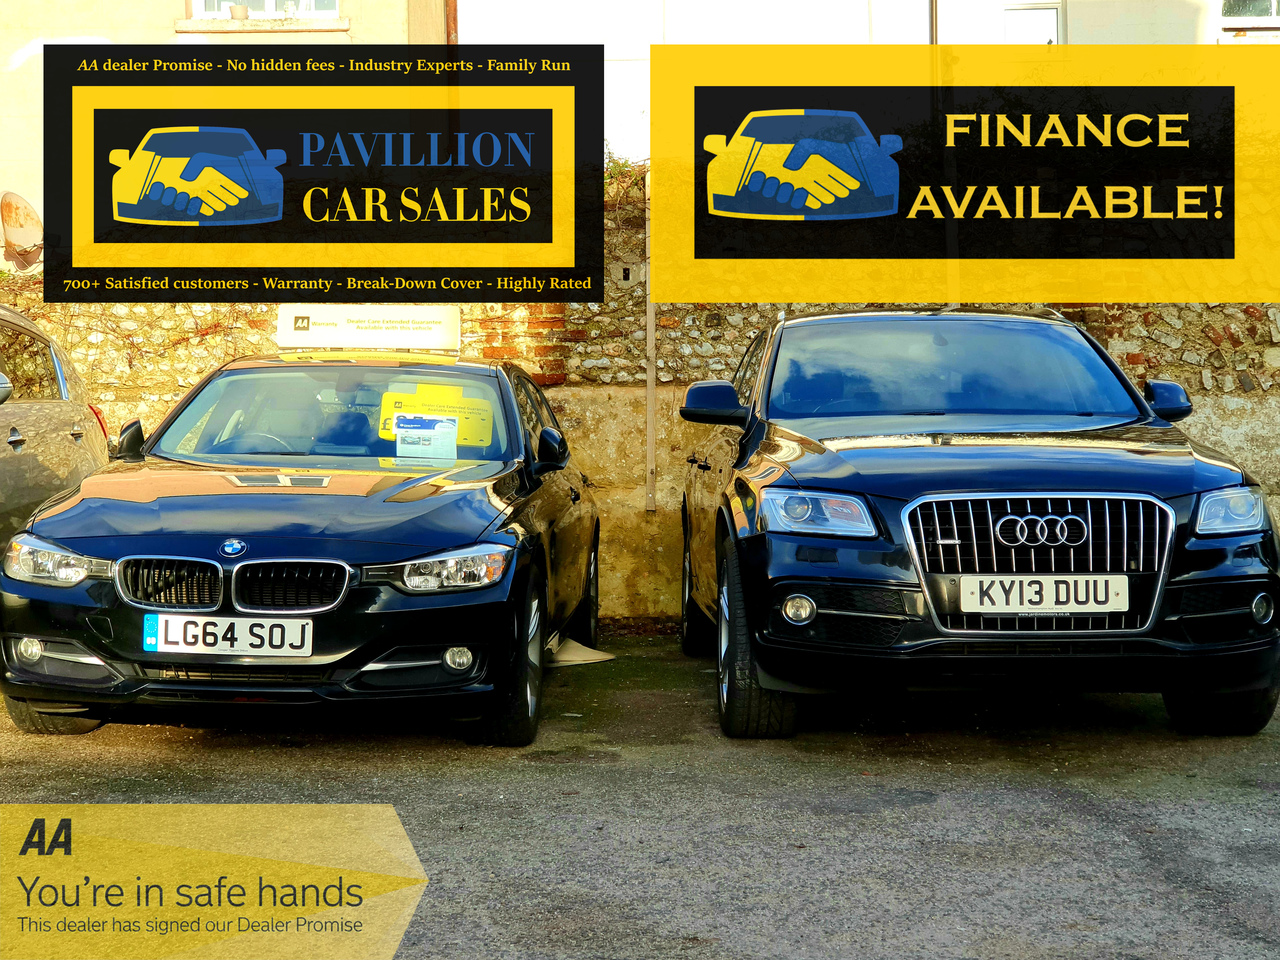 Finance is available on all of our cars!